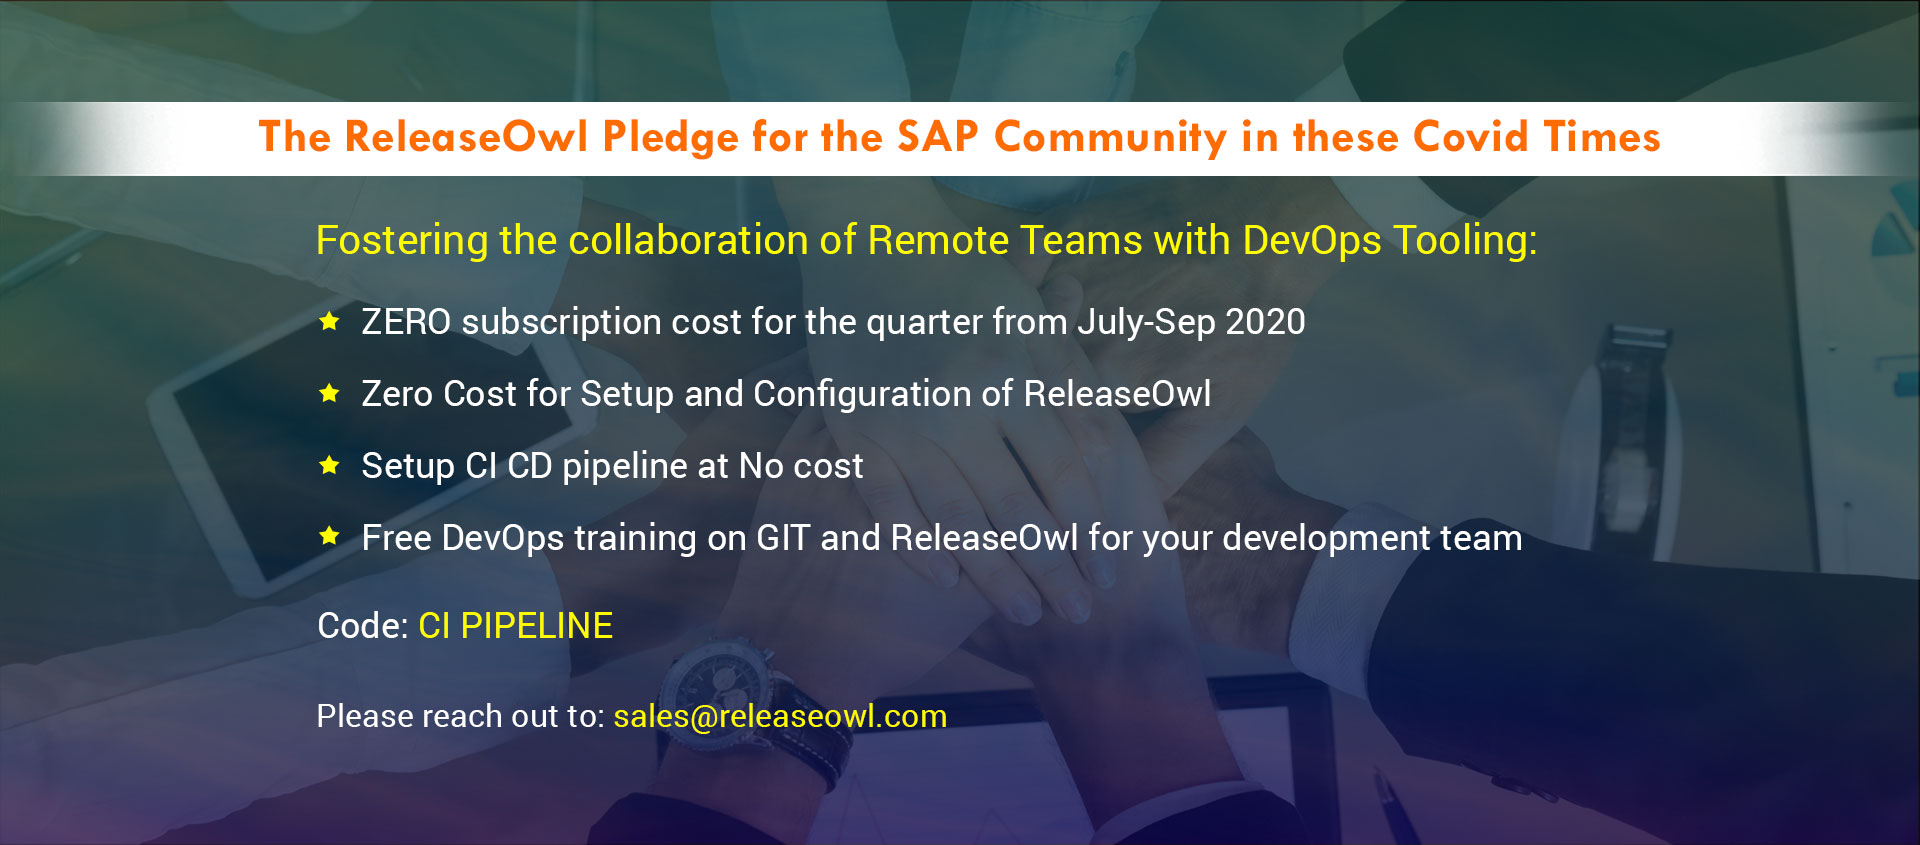 The ReleaseOwl Pledge for the SAP Community in these Covid Times